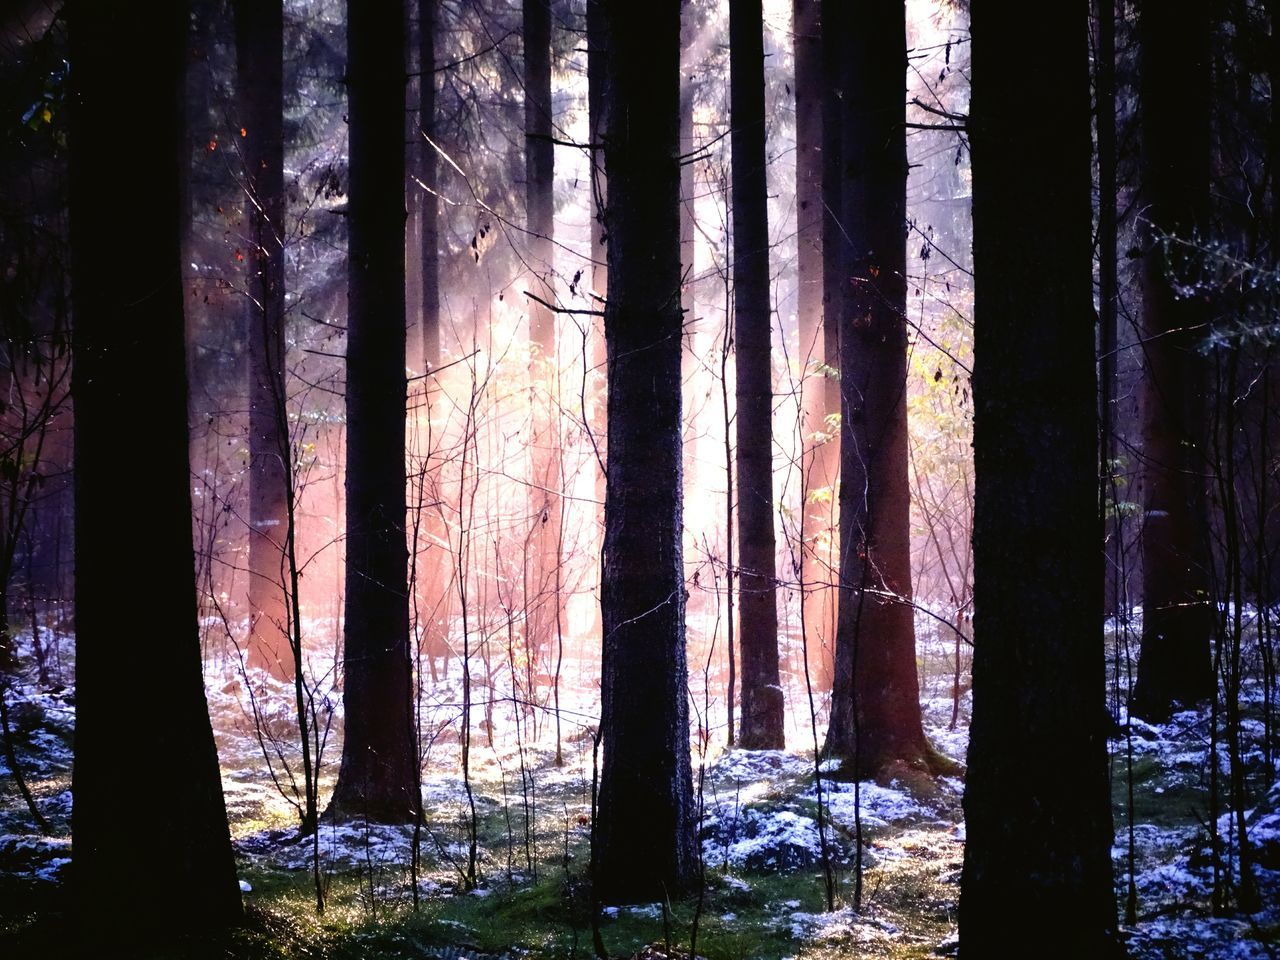 forest, tree trunk, tree, nature, woodland, no people, forest fire, landscape, wilderness area, day, outdoors, bleak